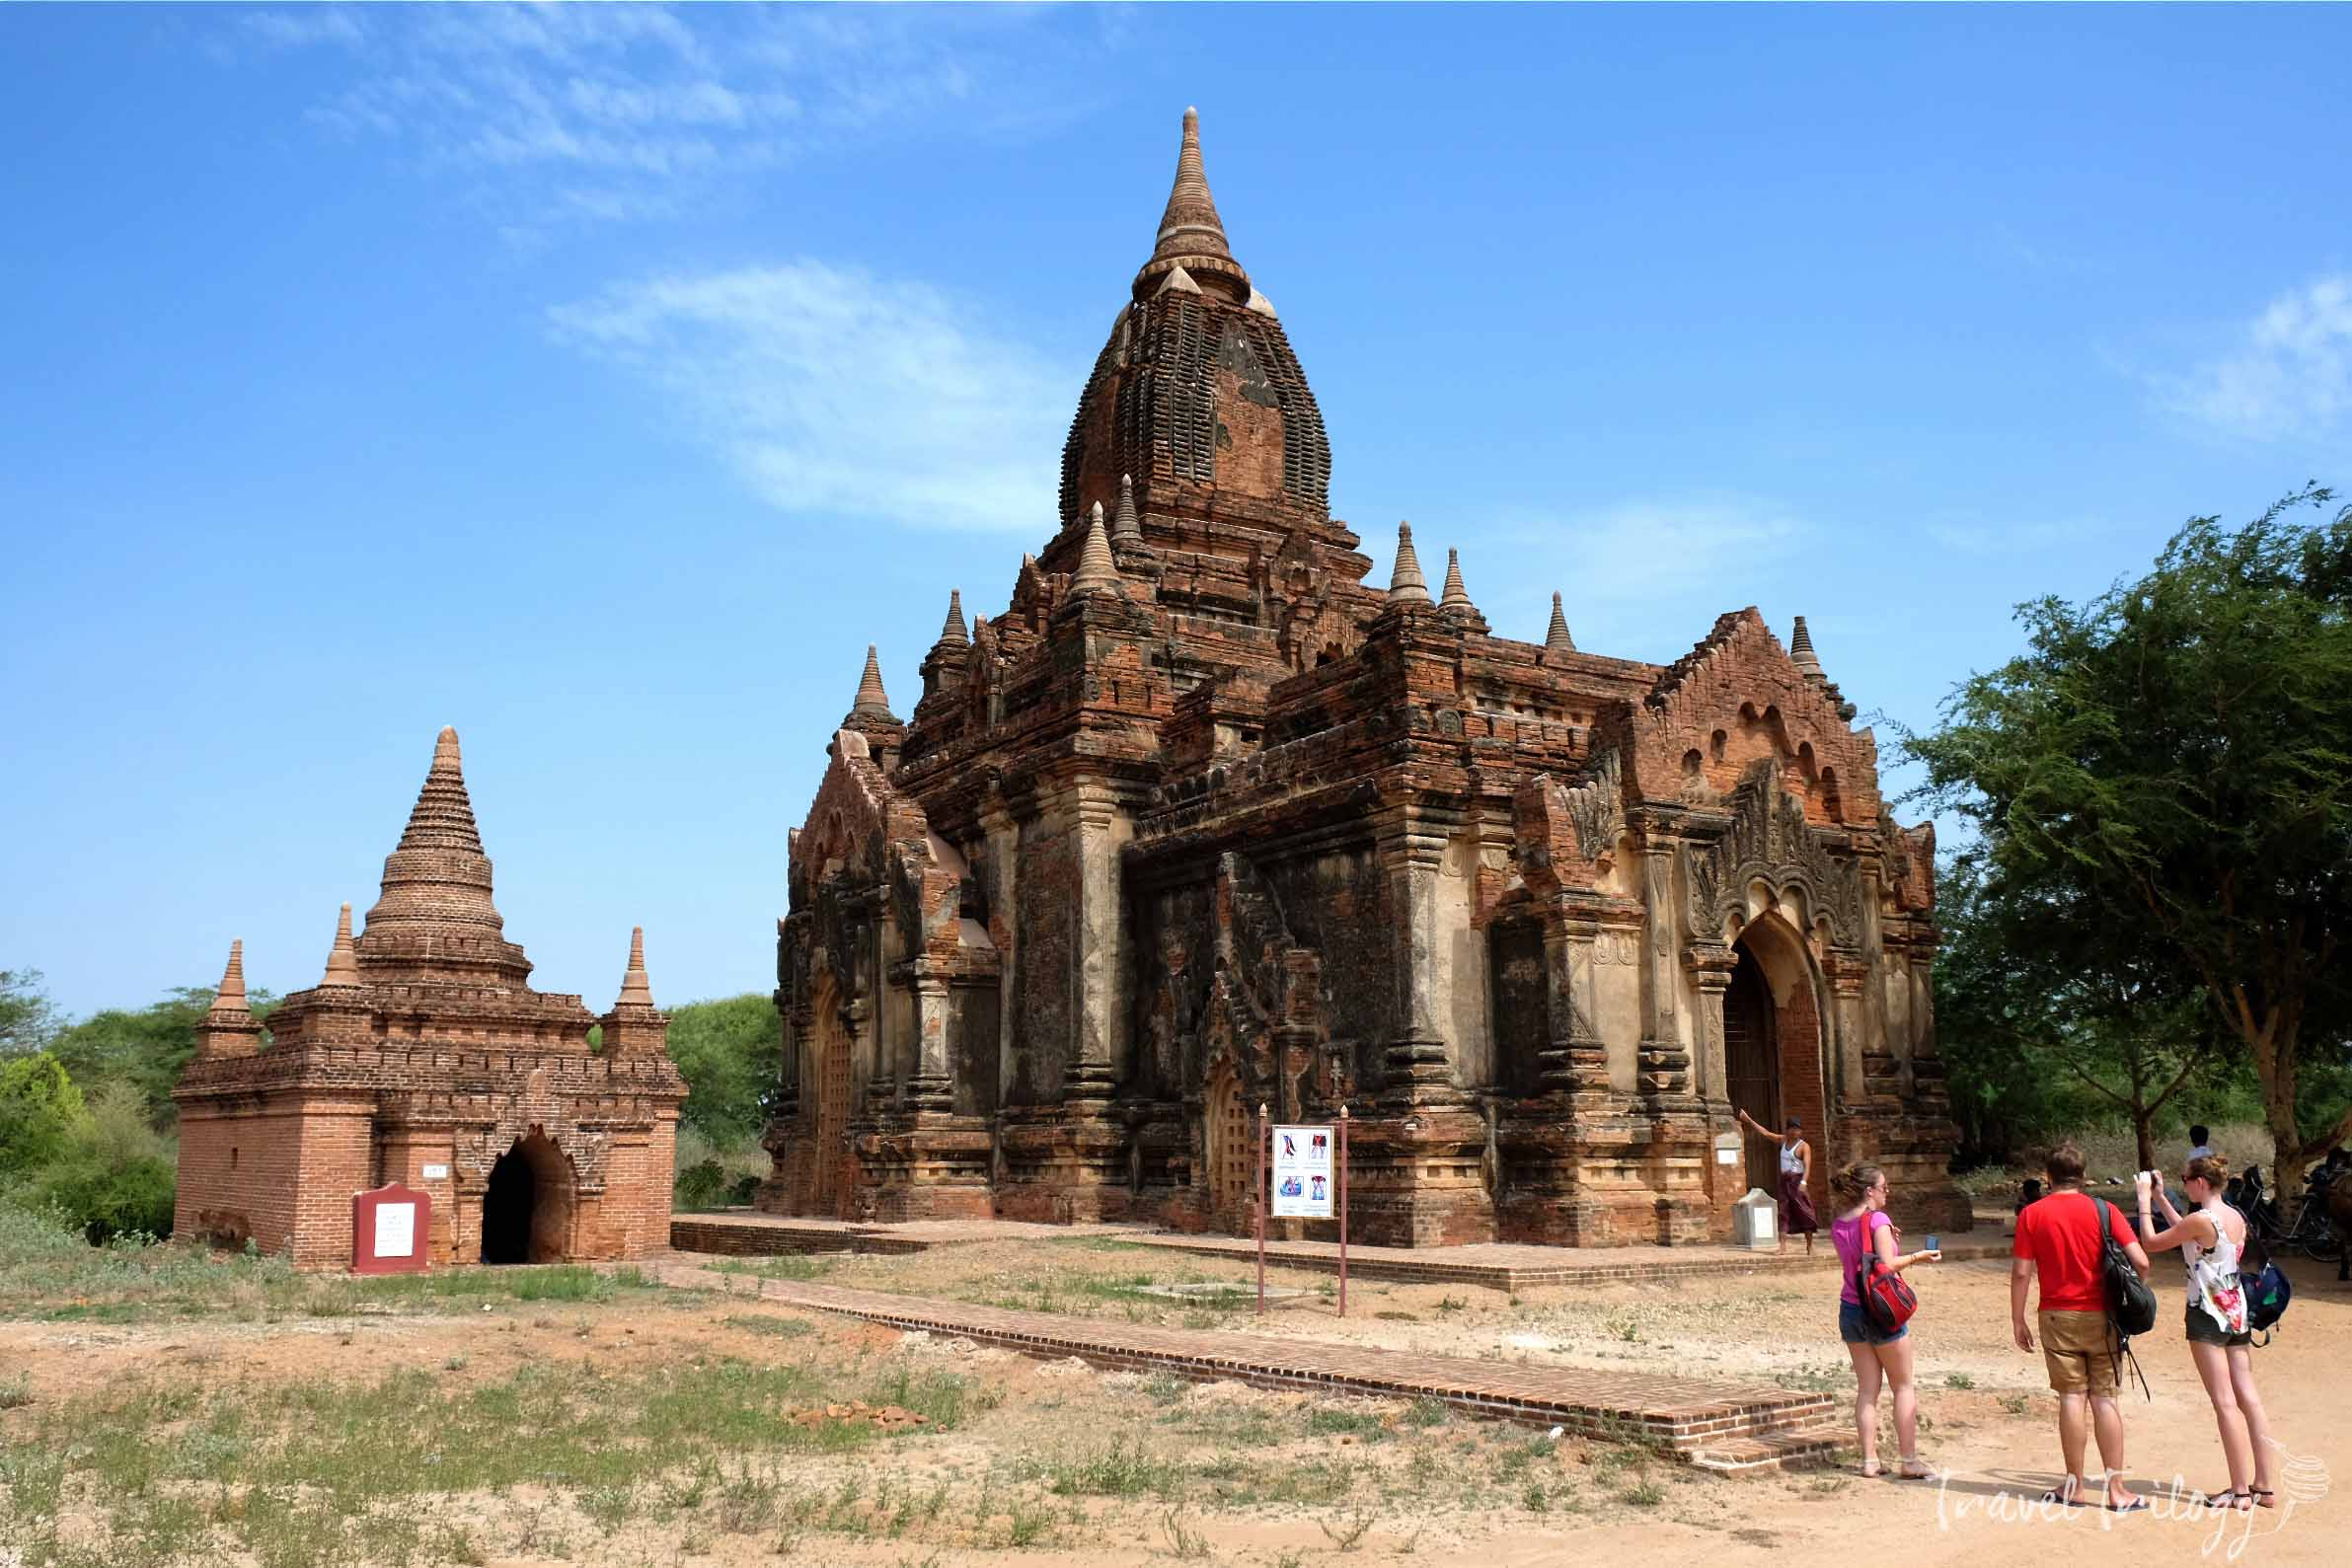 The temples are scattered all around the Old Bagan & the route maps are quite confusing. It helps to have a guide.